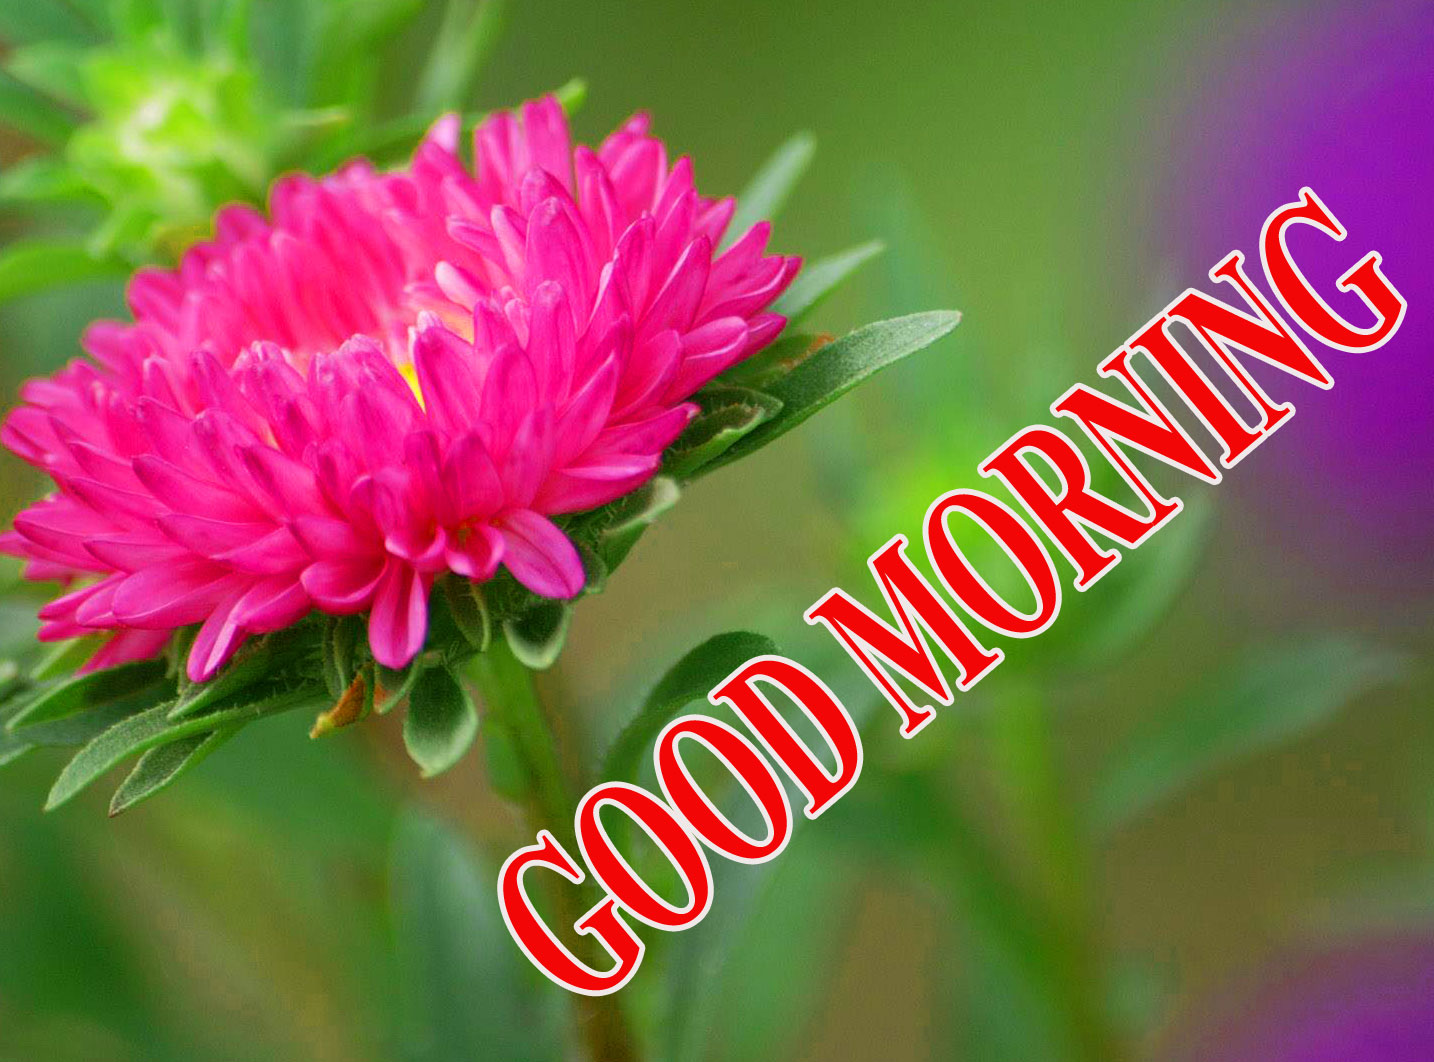 BEAUTIFUL LATEST AMAZING ALL GOOD MORNING WISHES IMAGES PHOTO WITH FLOWER